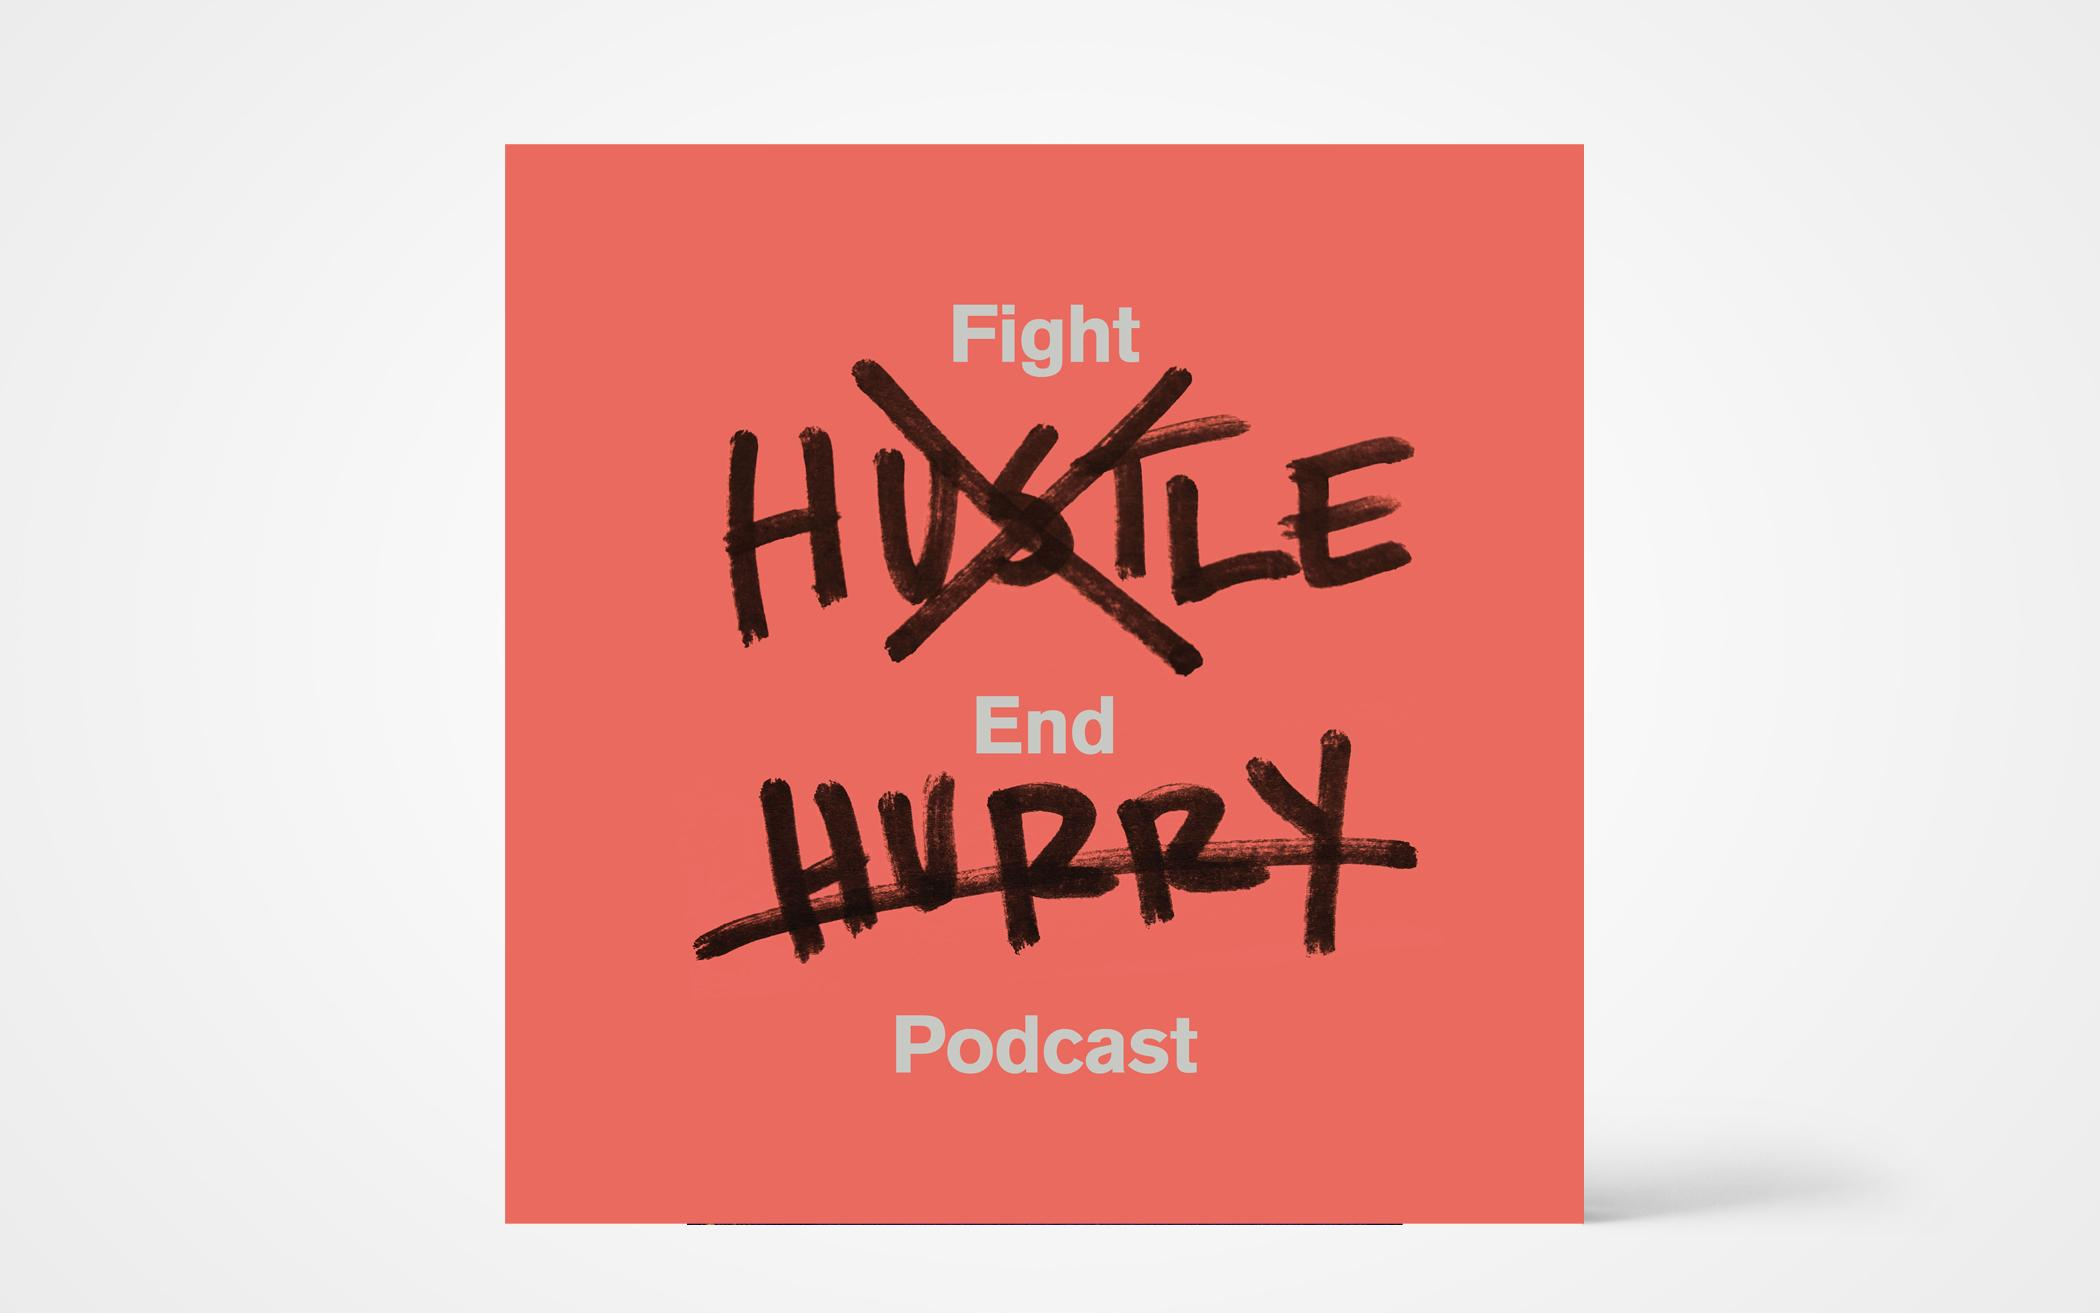 Fight Hustle, End Hurry podcast